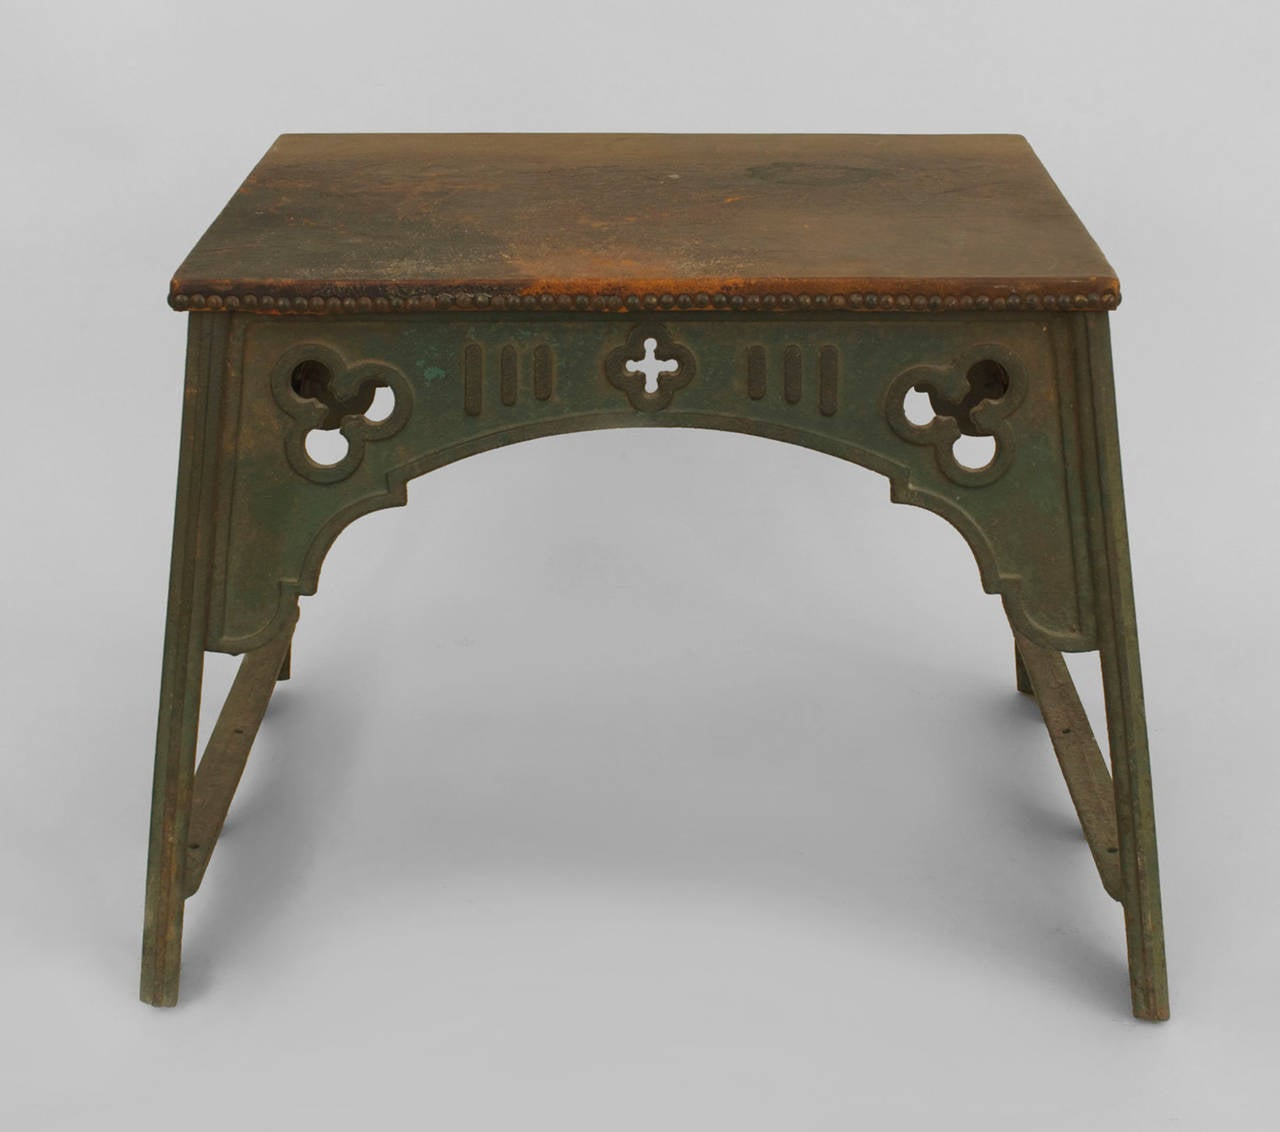 English Arts And Crafts Iron Coffee Table With Leather Top For Sale At 1stdibs